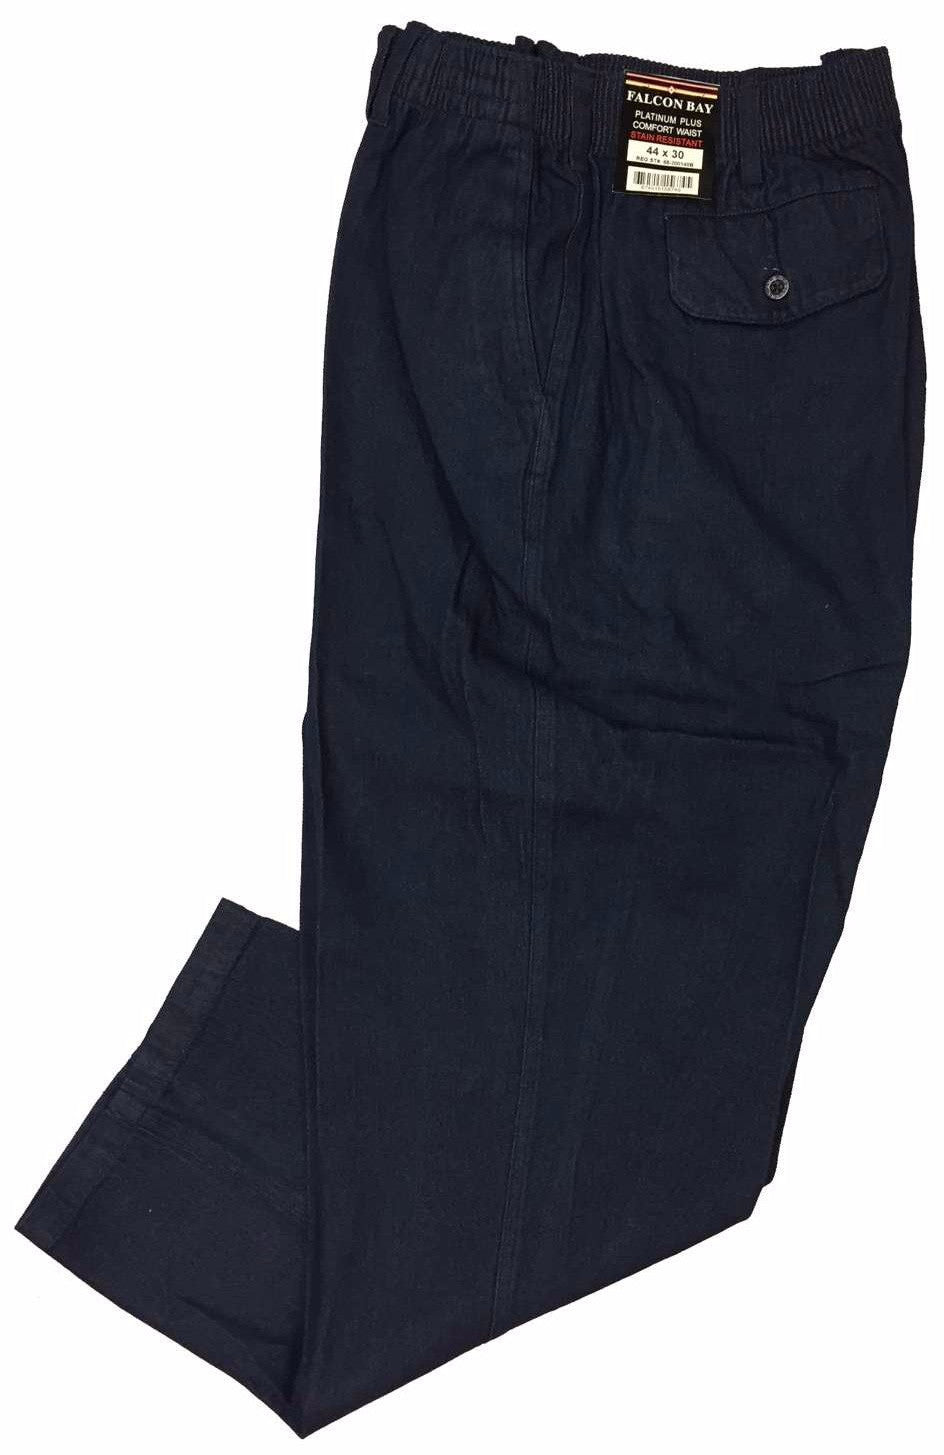 638a9c0a9f Big and Tall Brands | Dickies, Wrangler, Port Authority and More ...